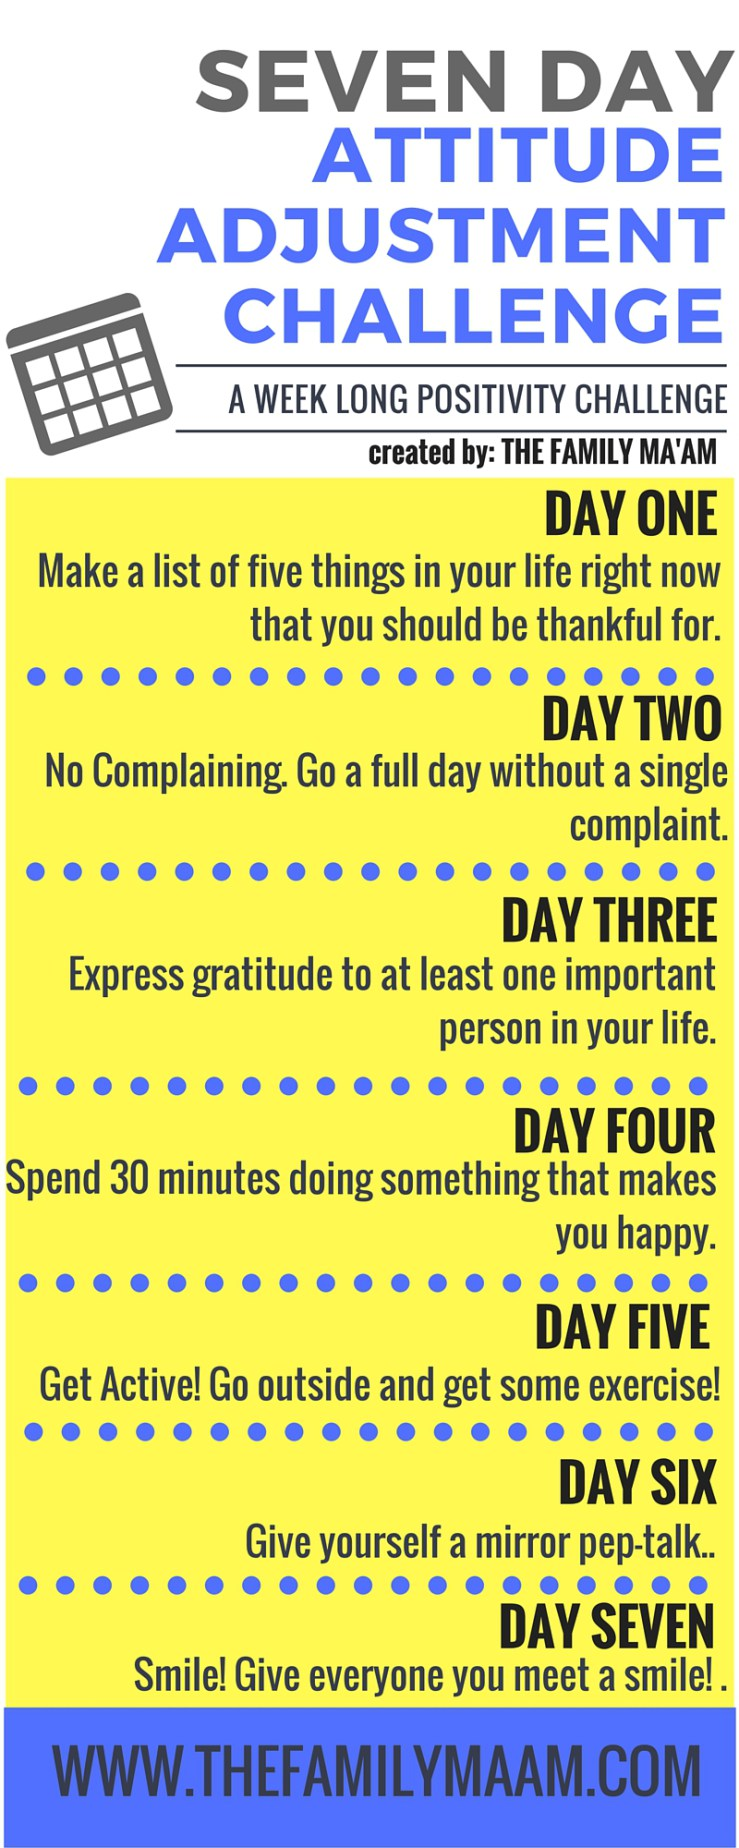 The-Seven-Day-Attitude-Adjustment-Challenge-Your-seven-day-guide-to-promoting-positivity-and-gettin-wallpaper-wp44012096